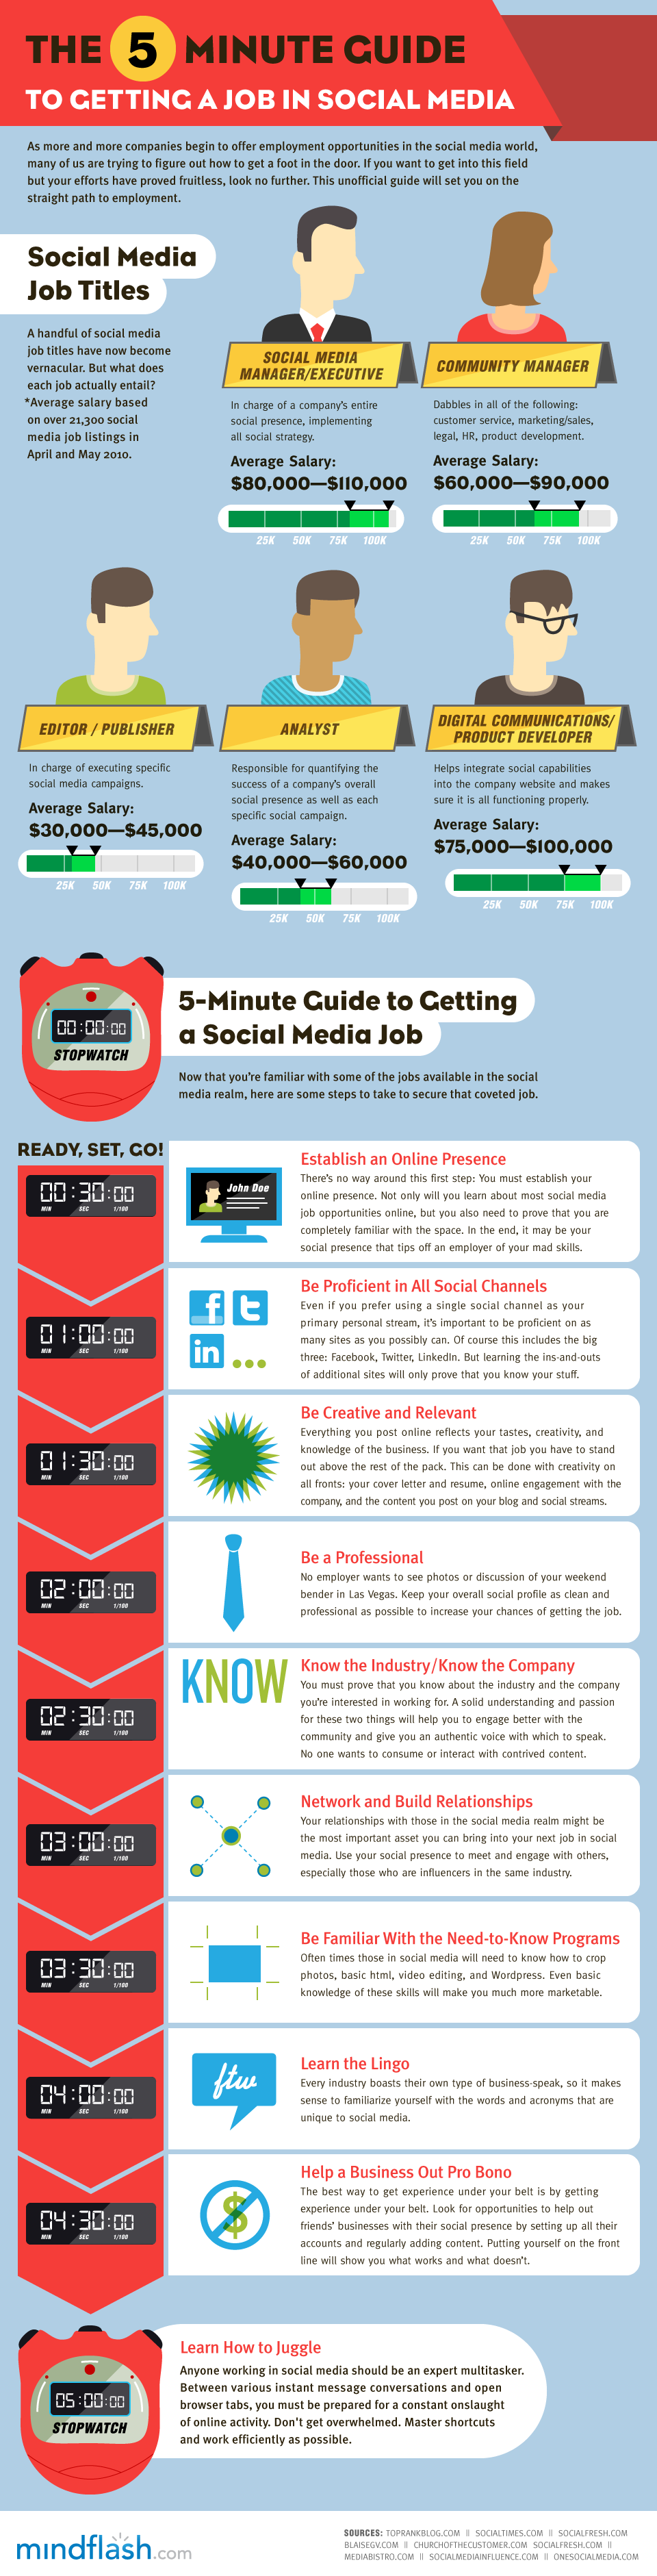 The 5 Minute Guide To Getting a Job in Social Media